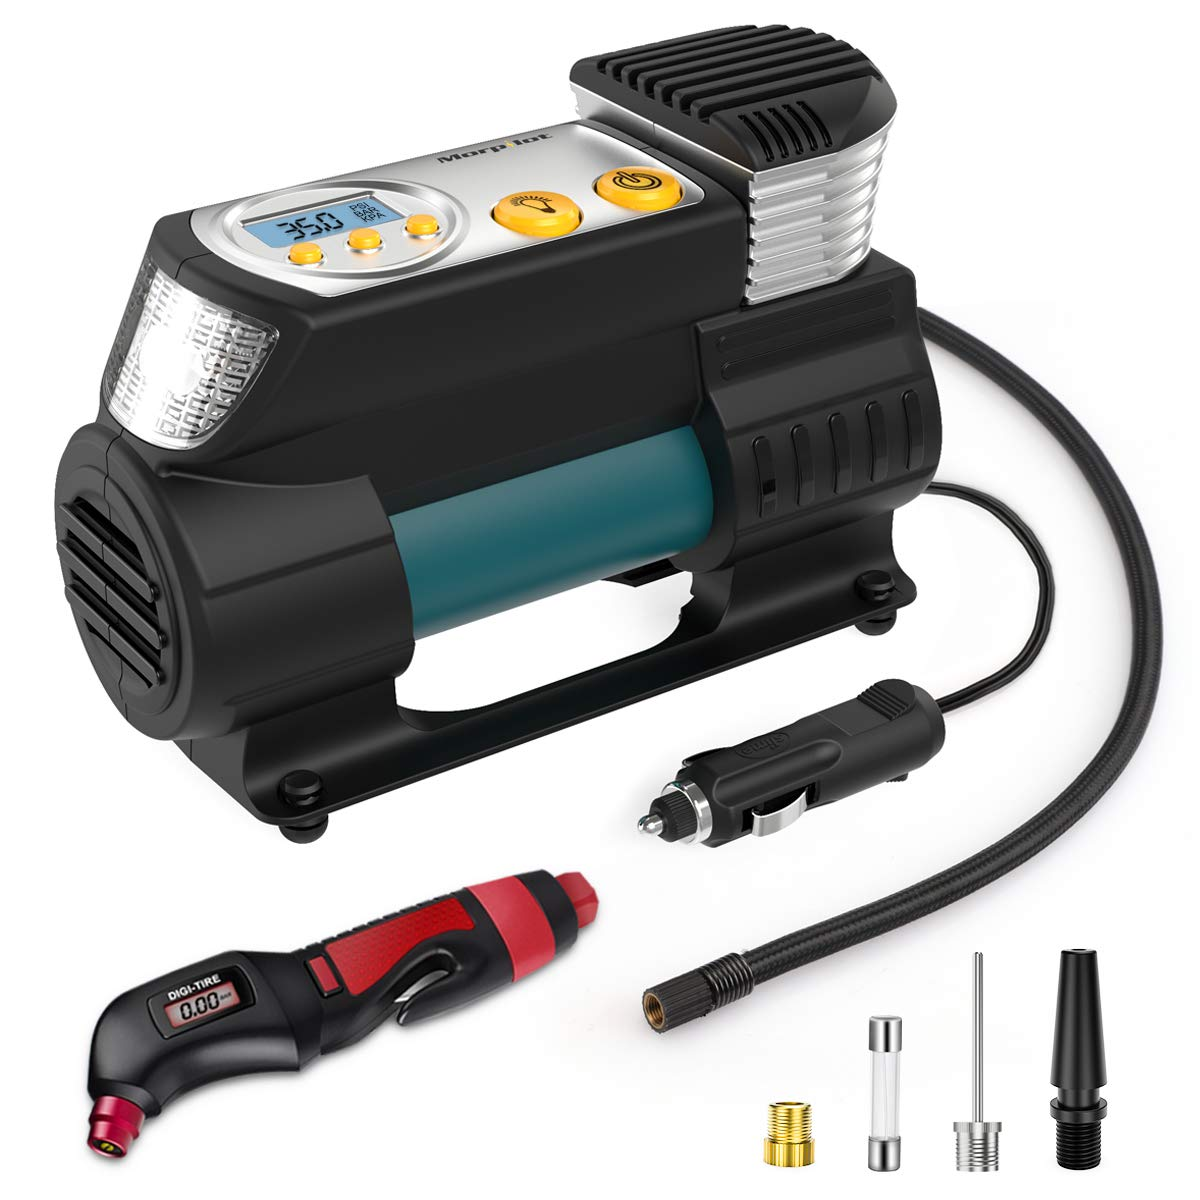 Keenstone Portable Tire Inflator, DC 12V Air Compressor Pump, Digital Tire Pump with Gauge, LED Flashlight, 4 Nozzle Adaptors, and Extra Fuse